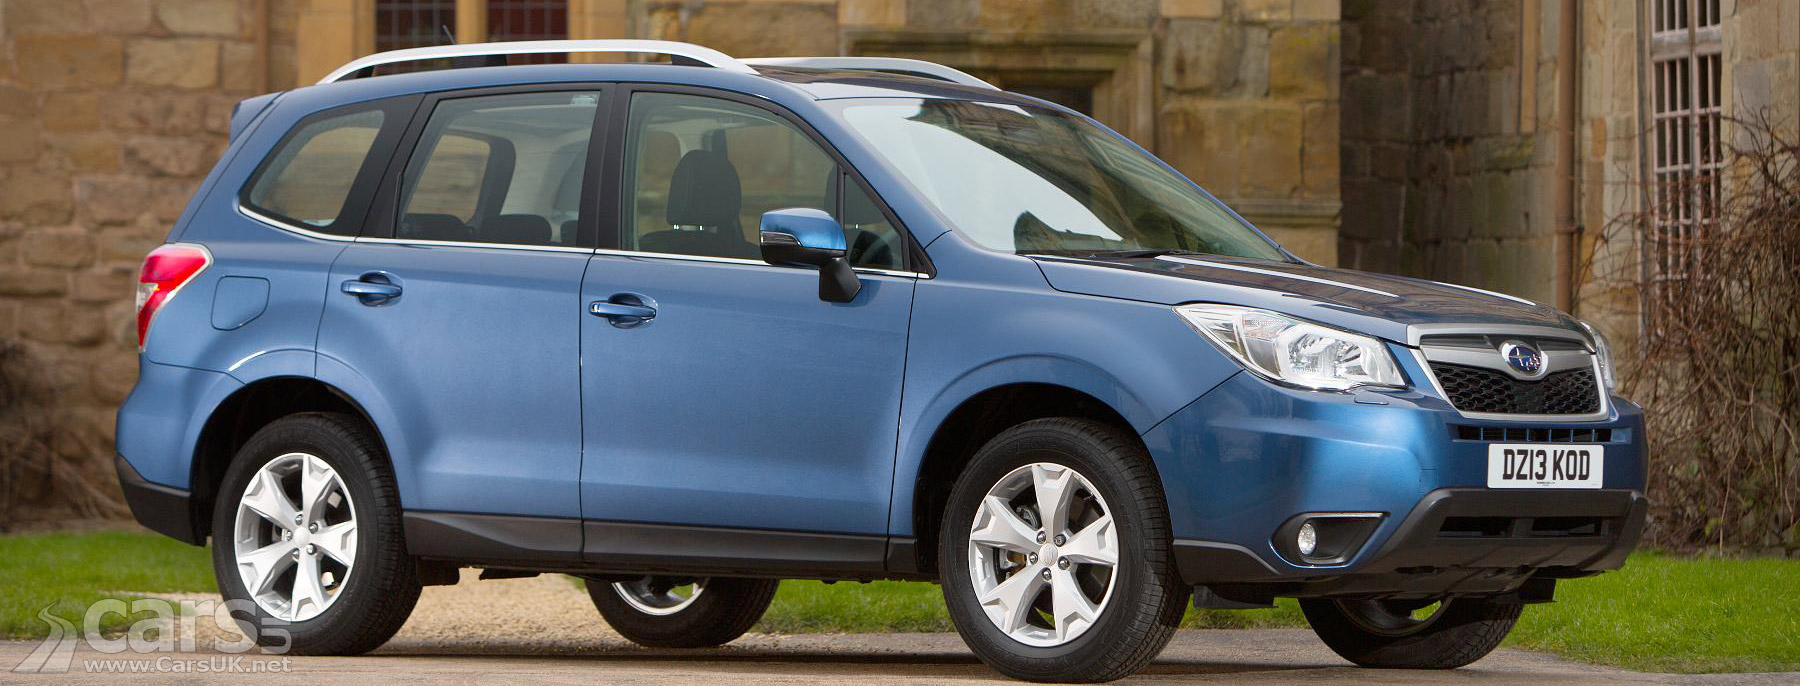 2013 subaru forester price from 24 995 cars uk. Black Bedroom Furniture Sets. Home Design Ideas